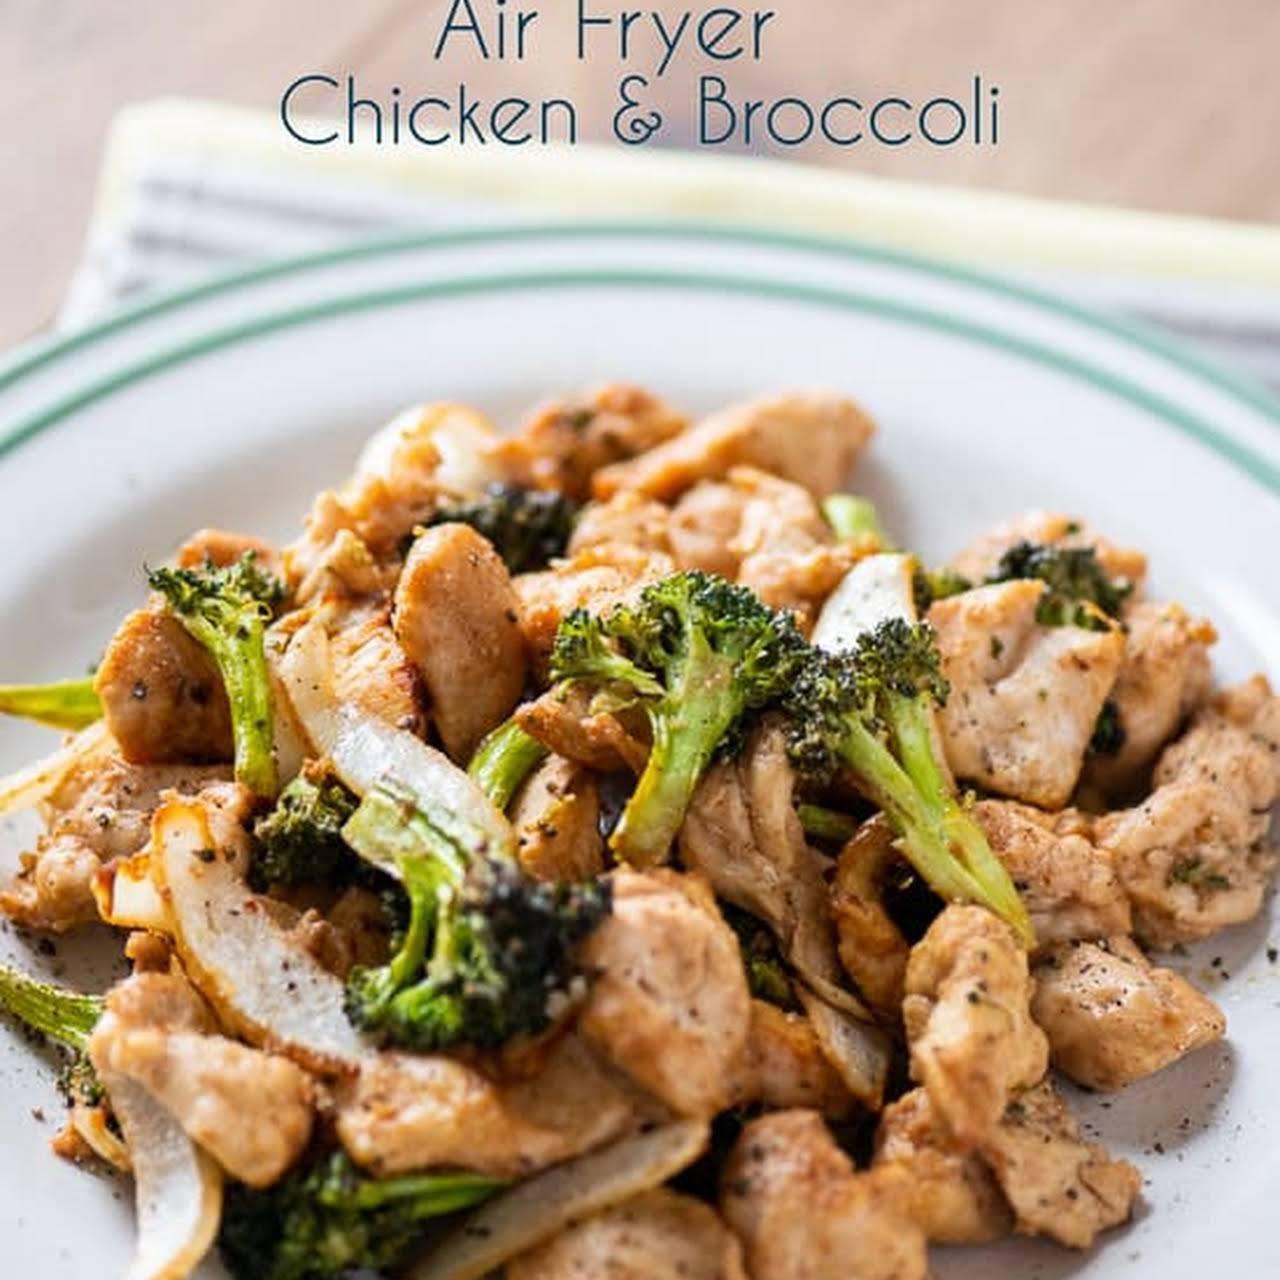 10 Best Low Calorie Chicken Broccoli Recipes | Yummly